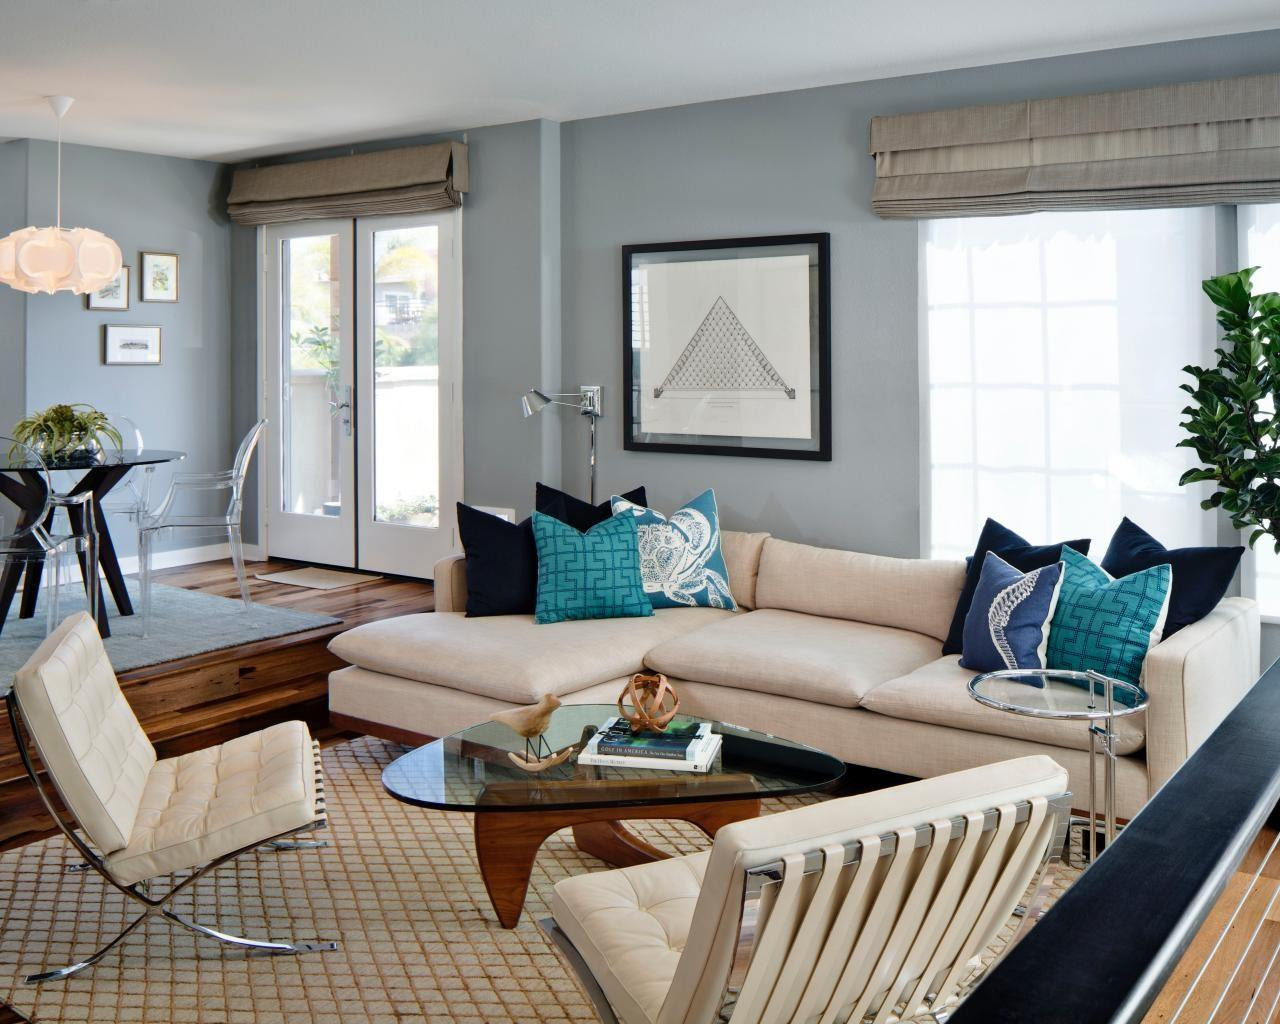 Awesome Coastal Living Room Decor Nice Relaxing Wall